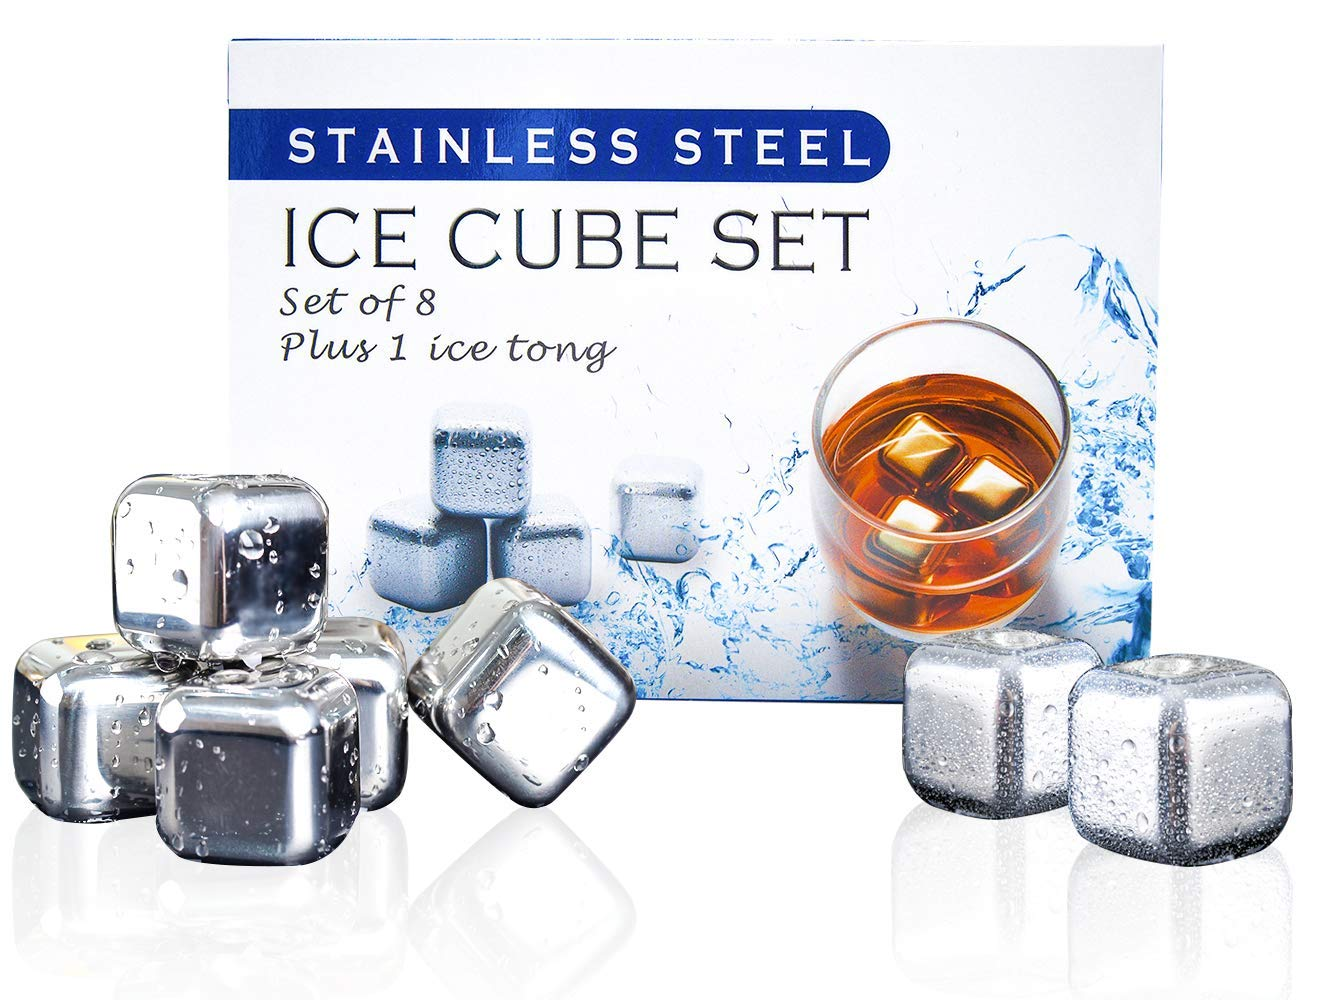 Whiskey Stones Gift Set, Maxwarm Stainless Steel Reusable Ice Cubes High Cooling Technology Set of 8 with Tongs & Freezer Storage Tray for Whiskey Wine Scotch Drinks Beer Juice by Maxwarm